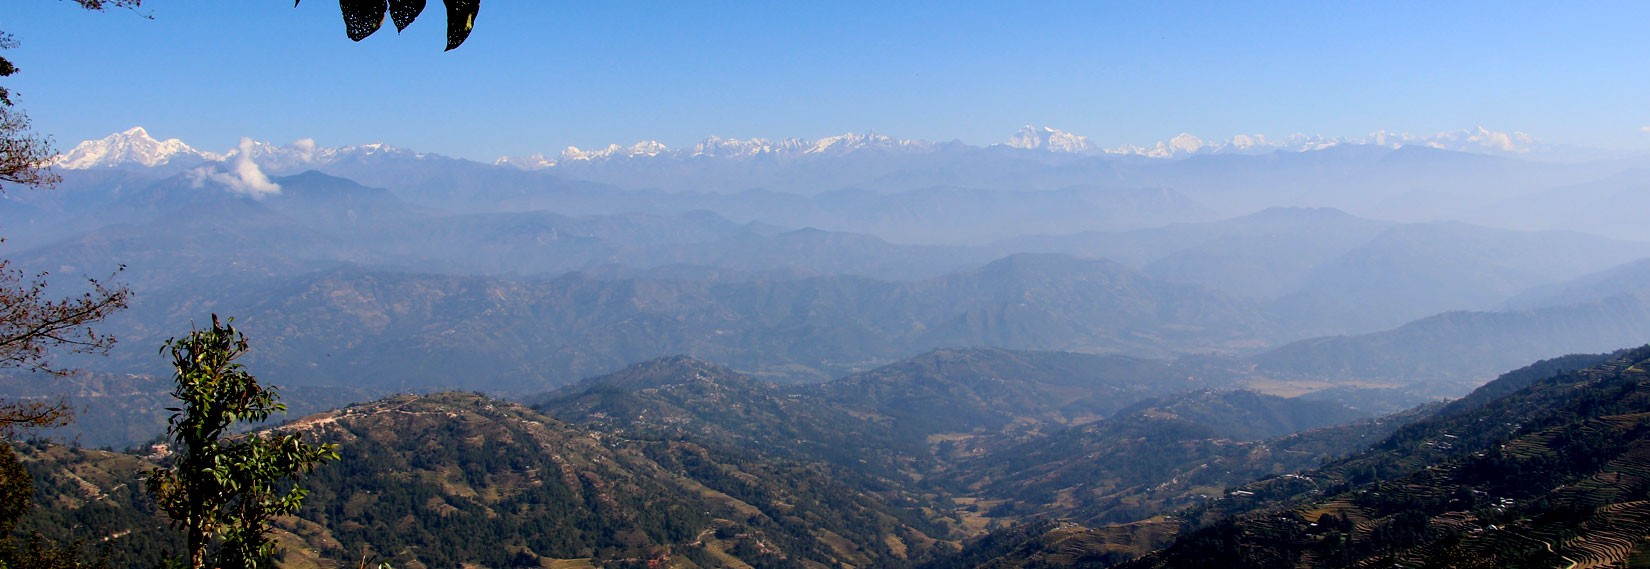 Mountain View from Nagarkot